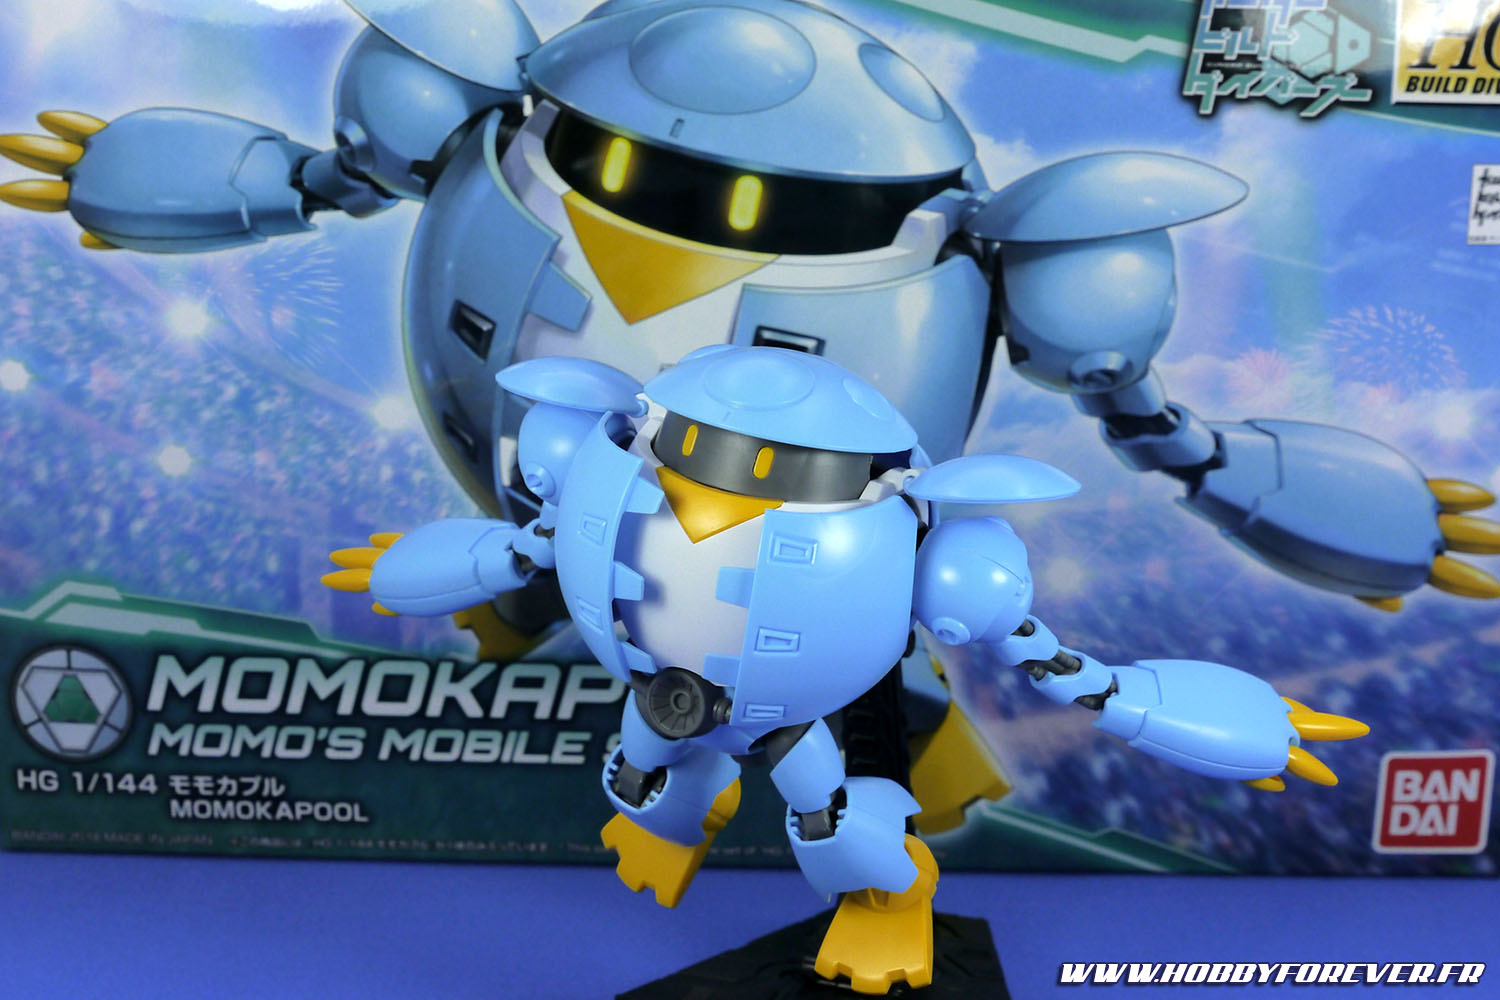 Review - HG Momokapool